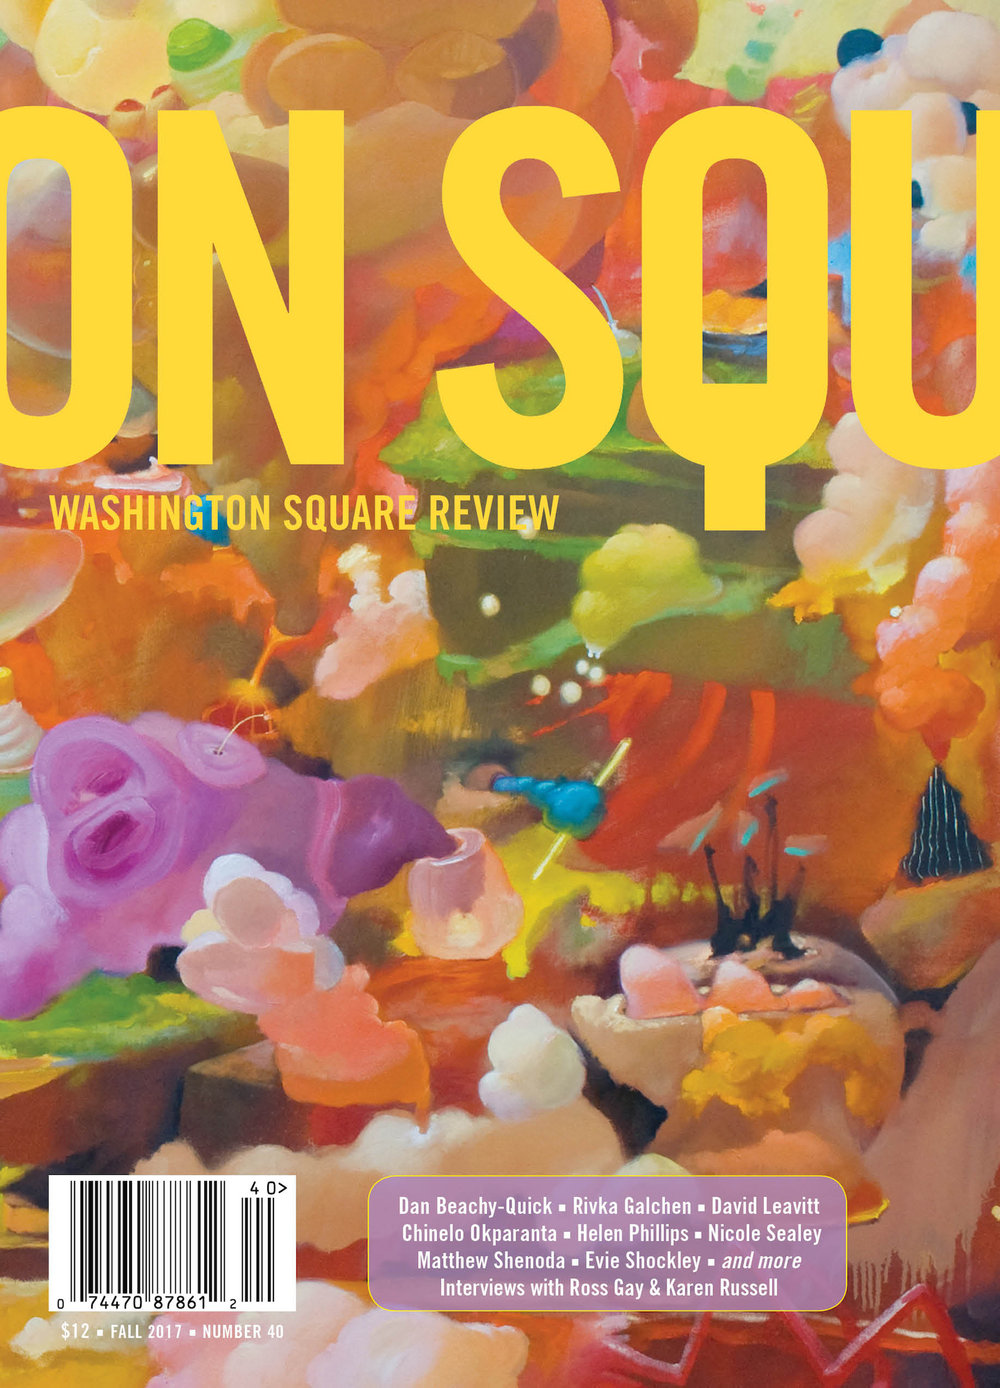 'book of VIII' | Washington Square Review. Spring 2018.